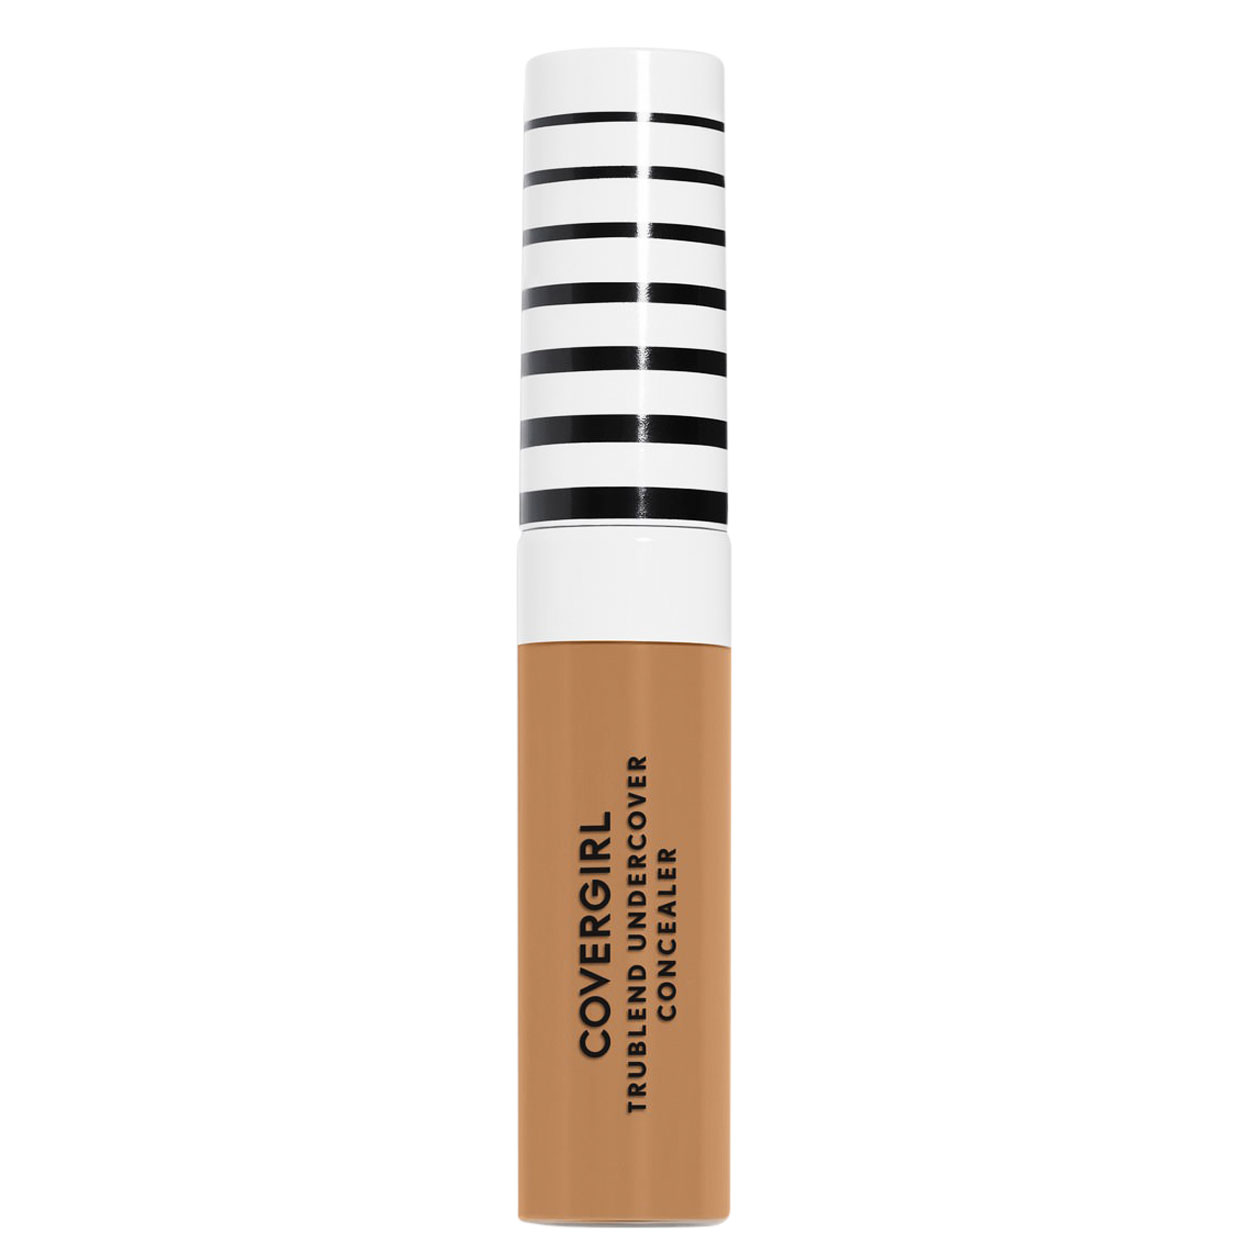 long-wear, blendable concealer that comes in 30 shades